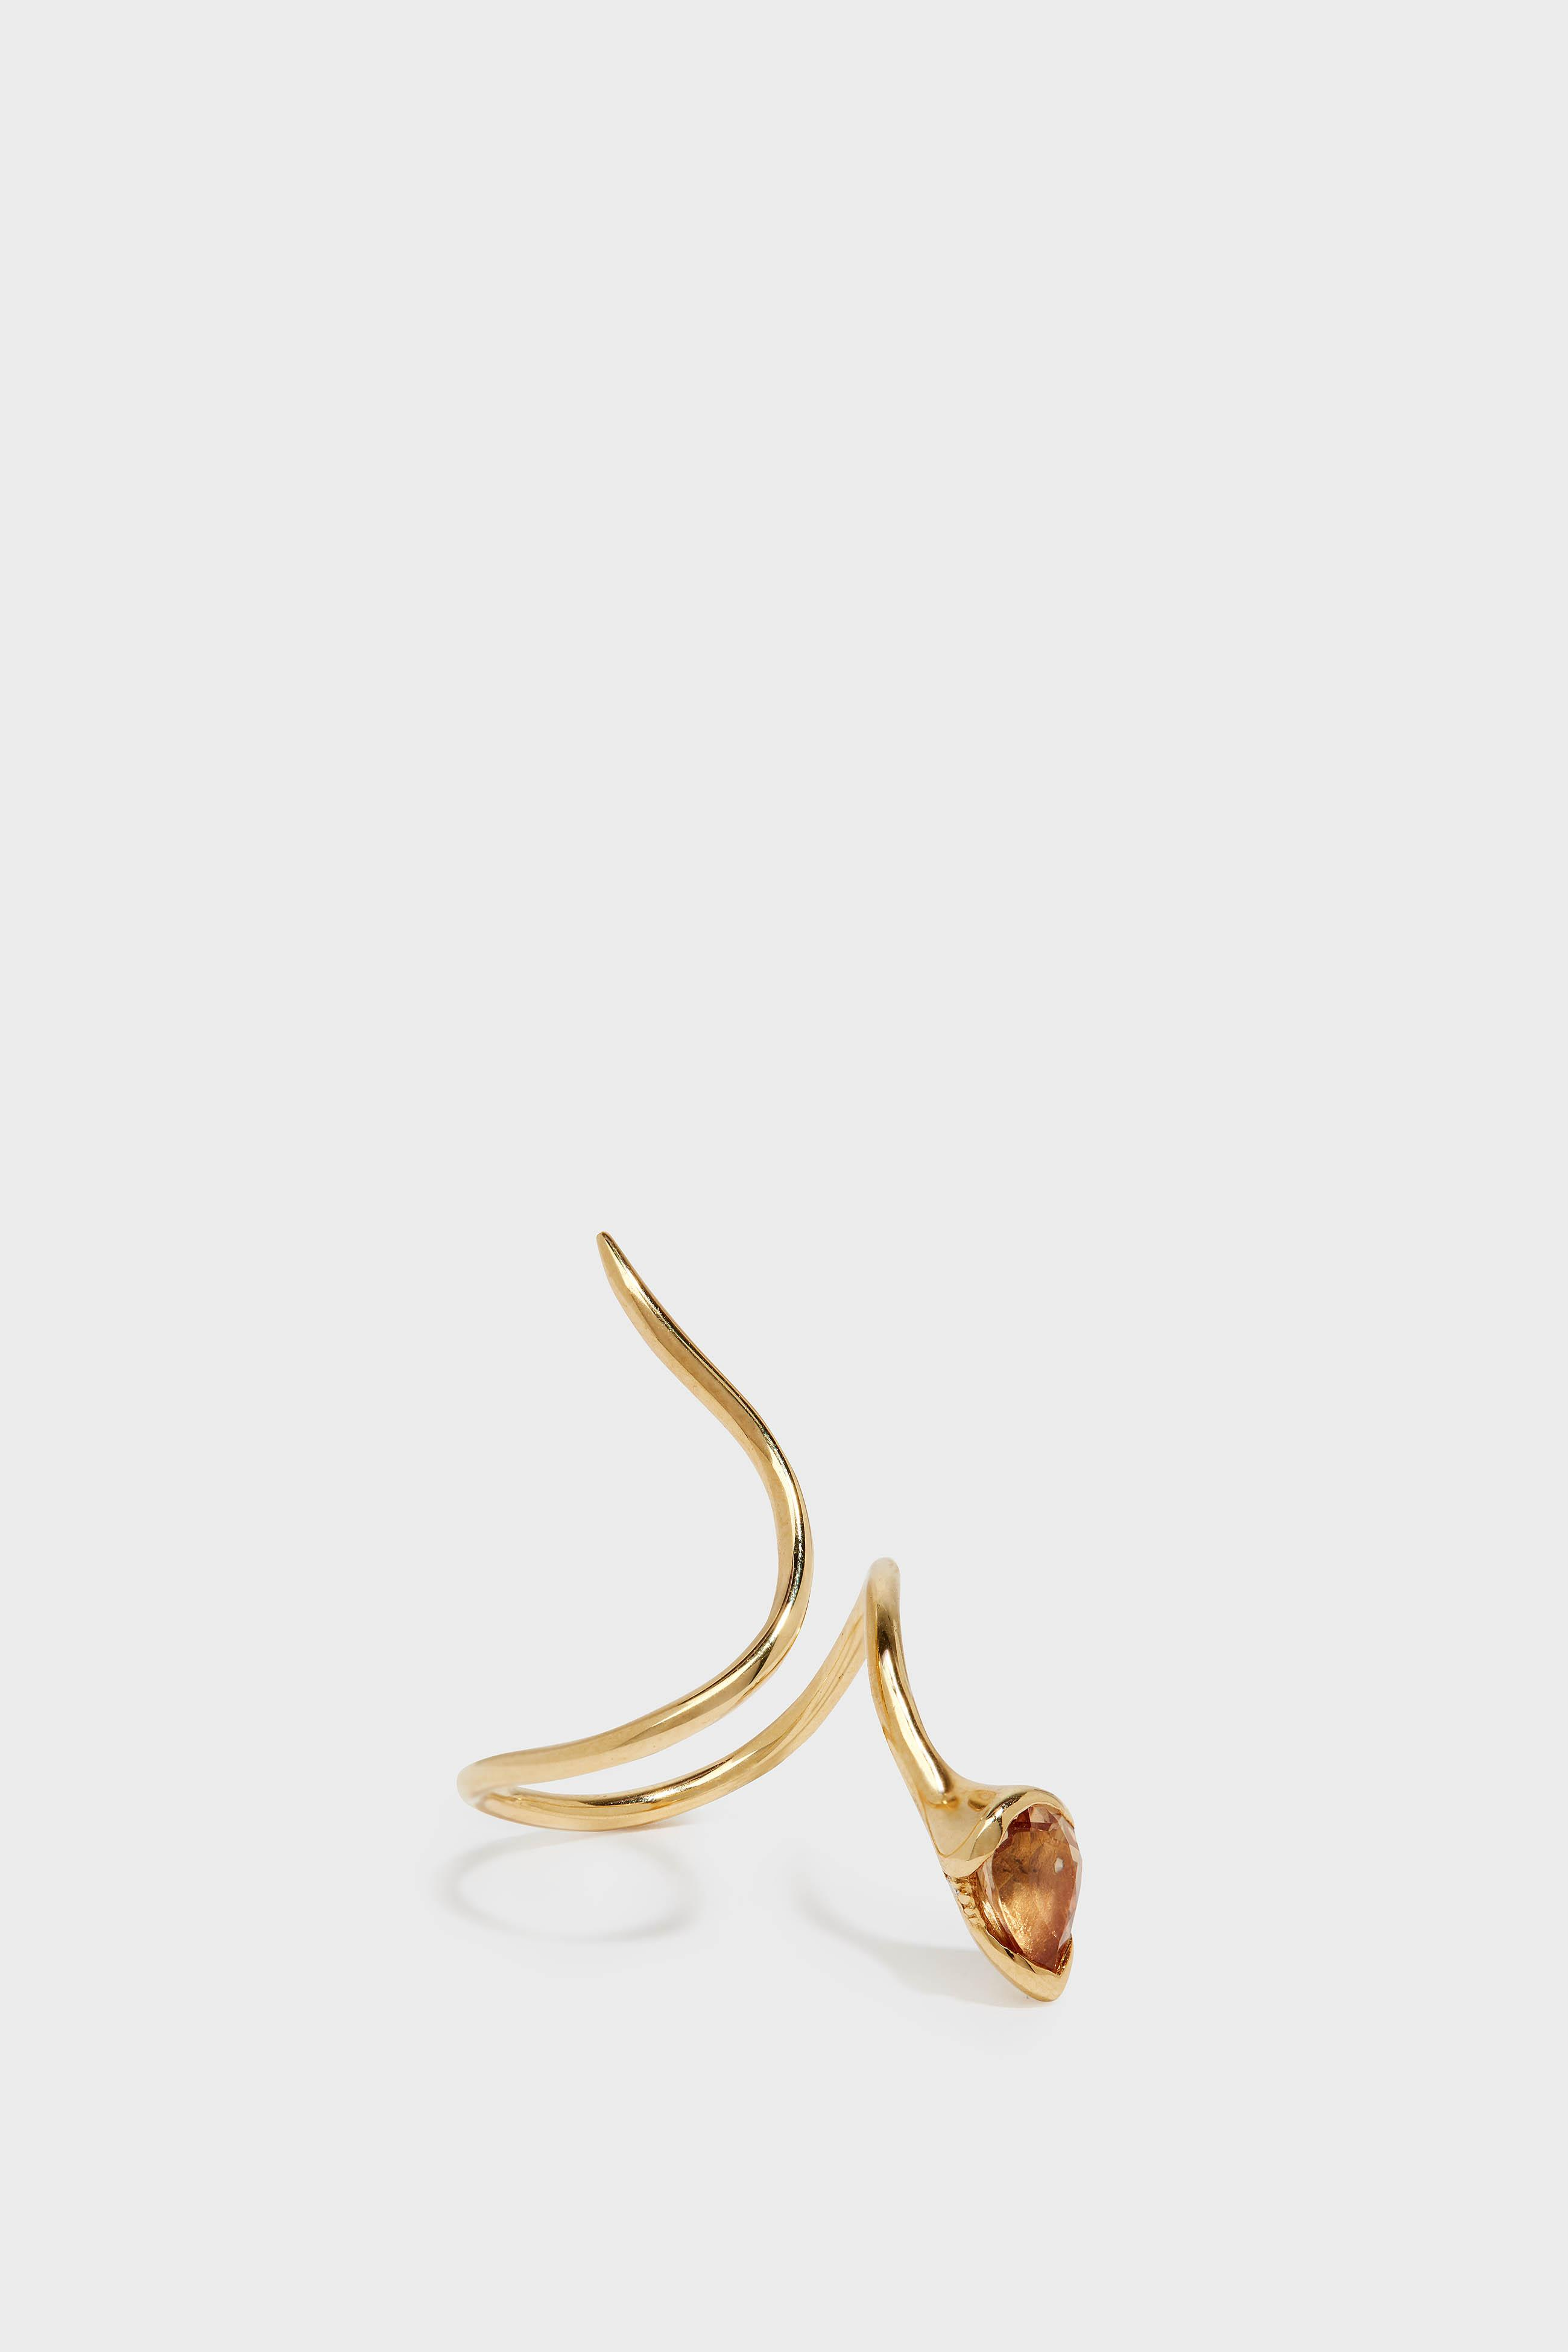 FERNANDO JORGE SPROUT 18-KARAT GOLD DIAMOND AND IMPERIAL TOPAZ RING